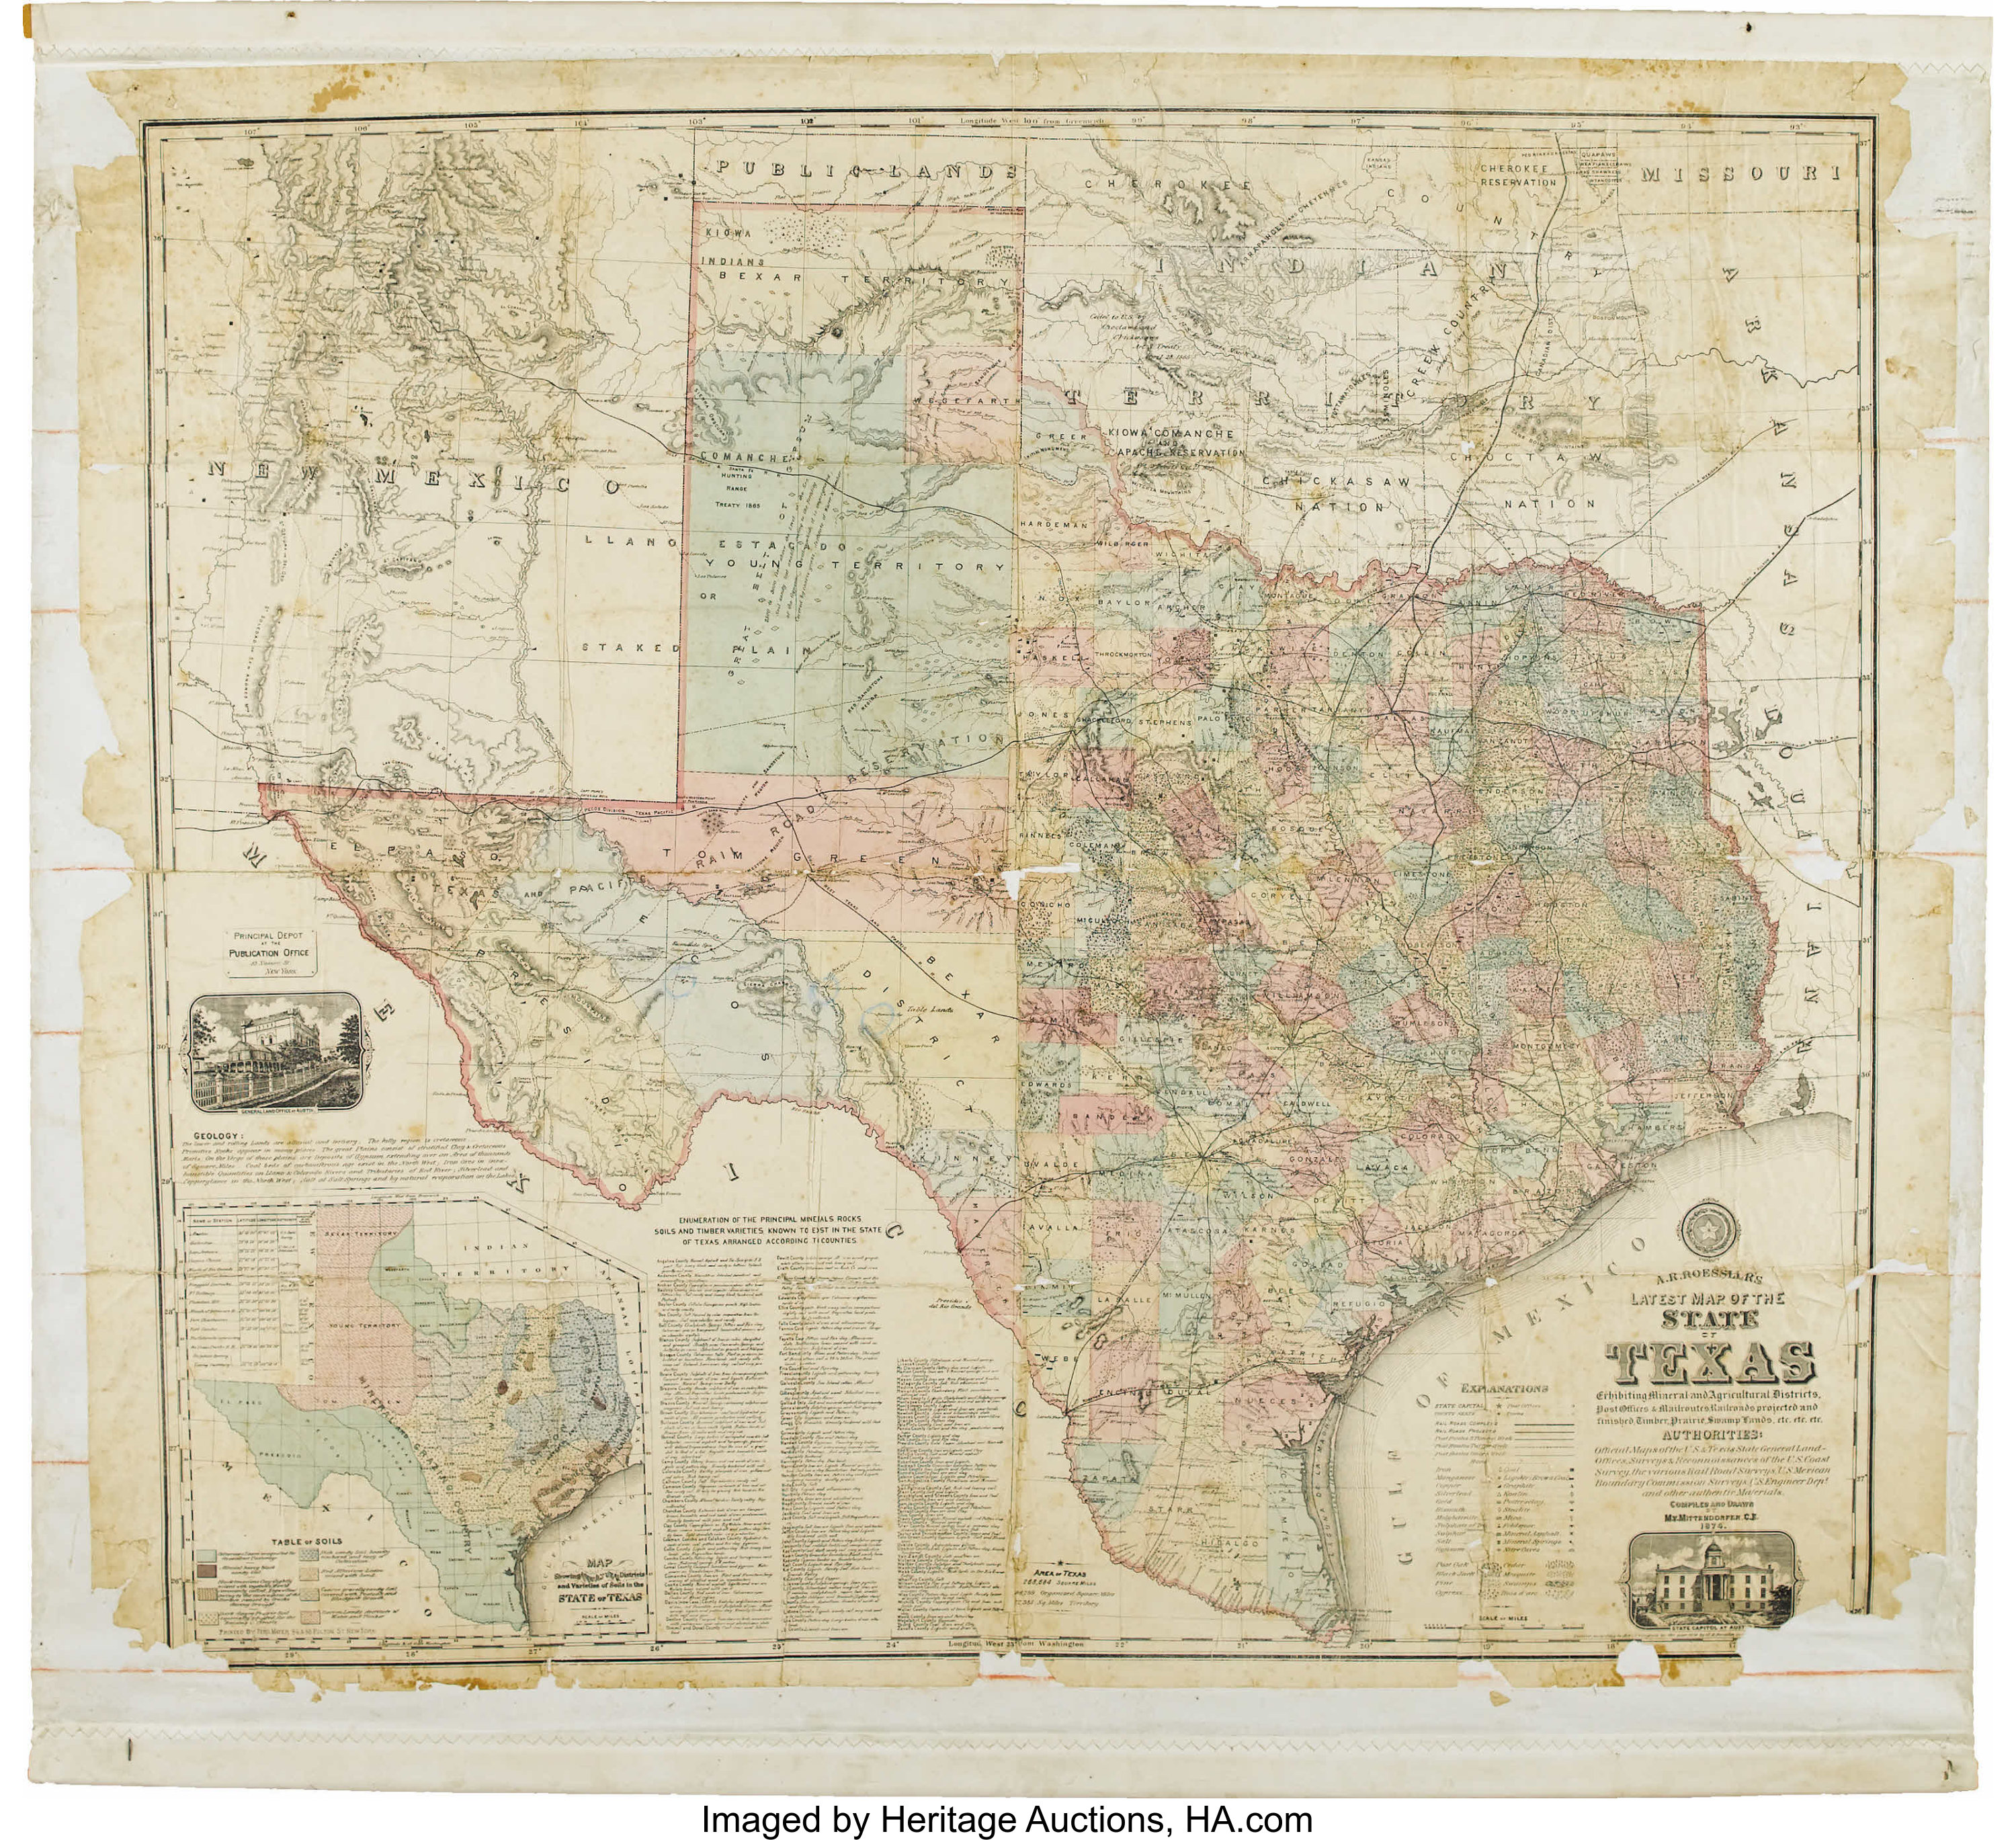 Map State Of Texas.A R Roessler S Latest Map Of The State Of Texas 1874 Lot